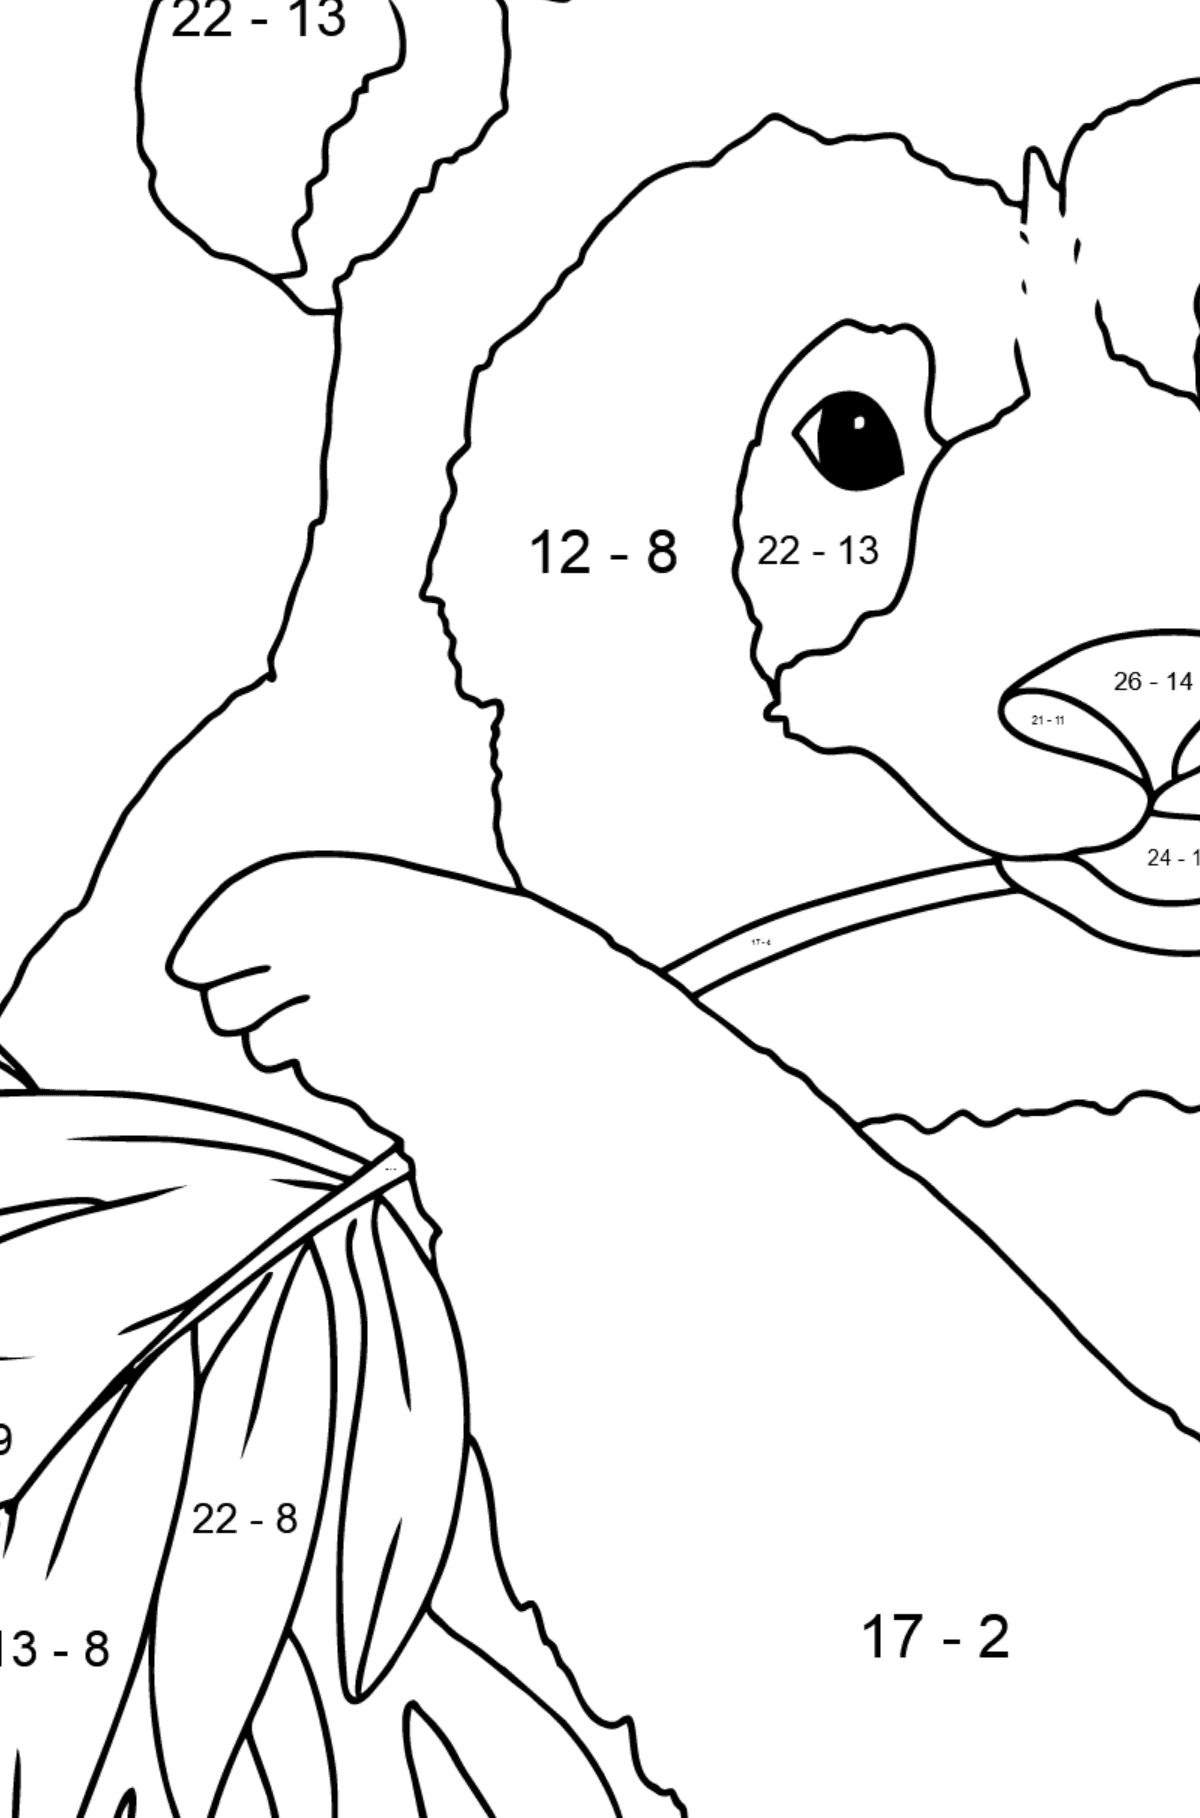 Coloring Page - A Panda is Eating Bamboo Leaves - Math Coloring - Subtraction for Kids